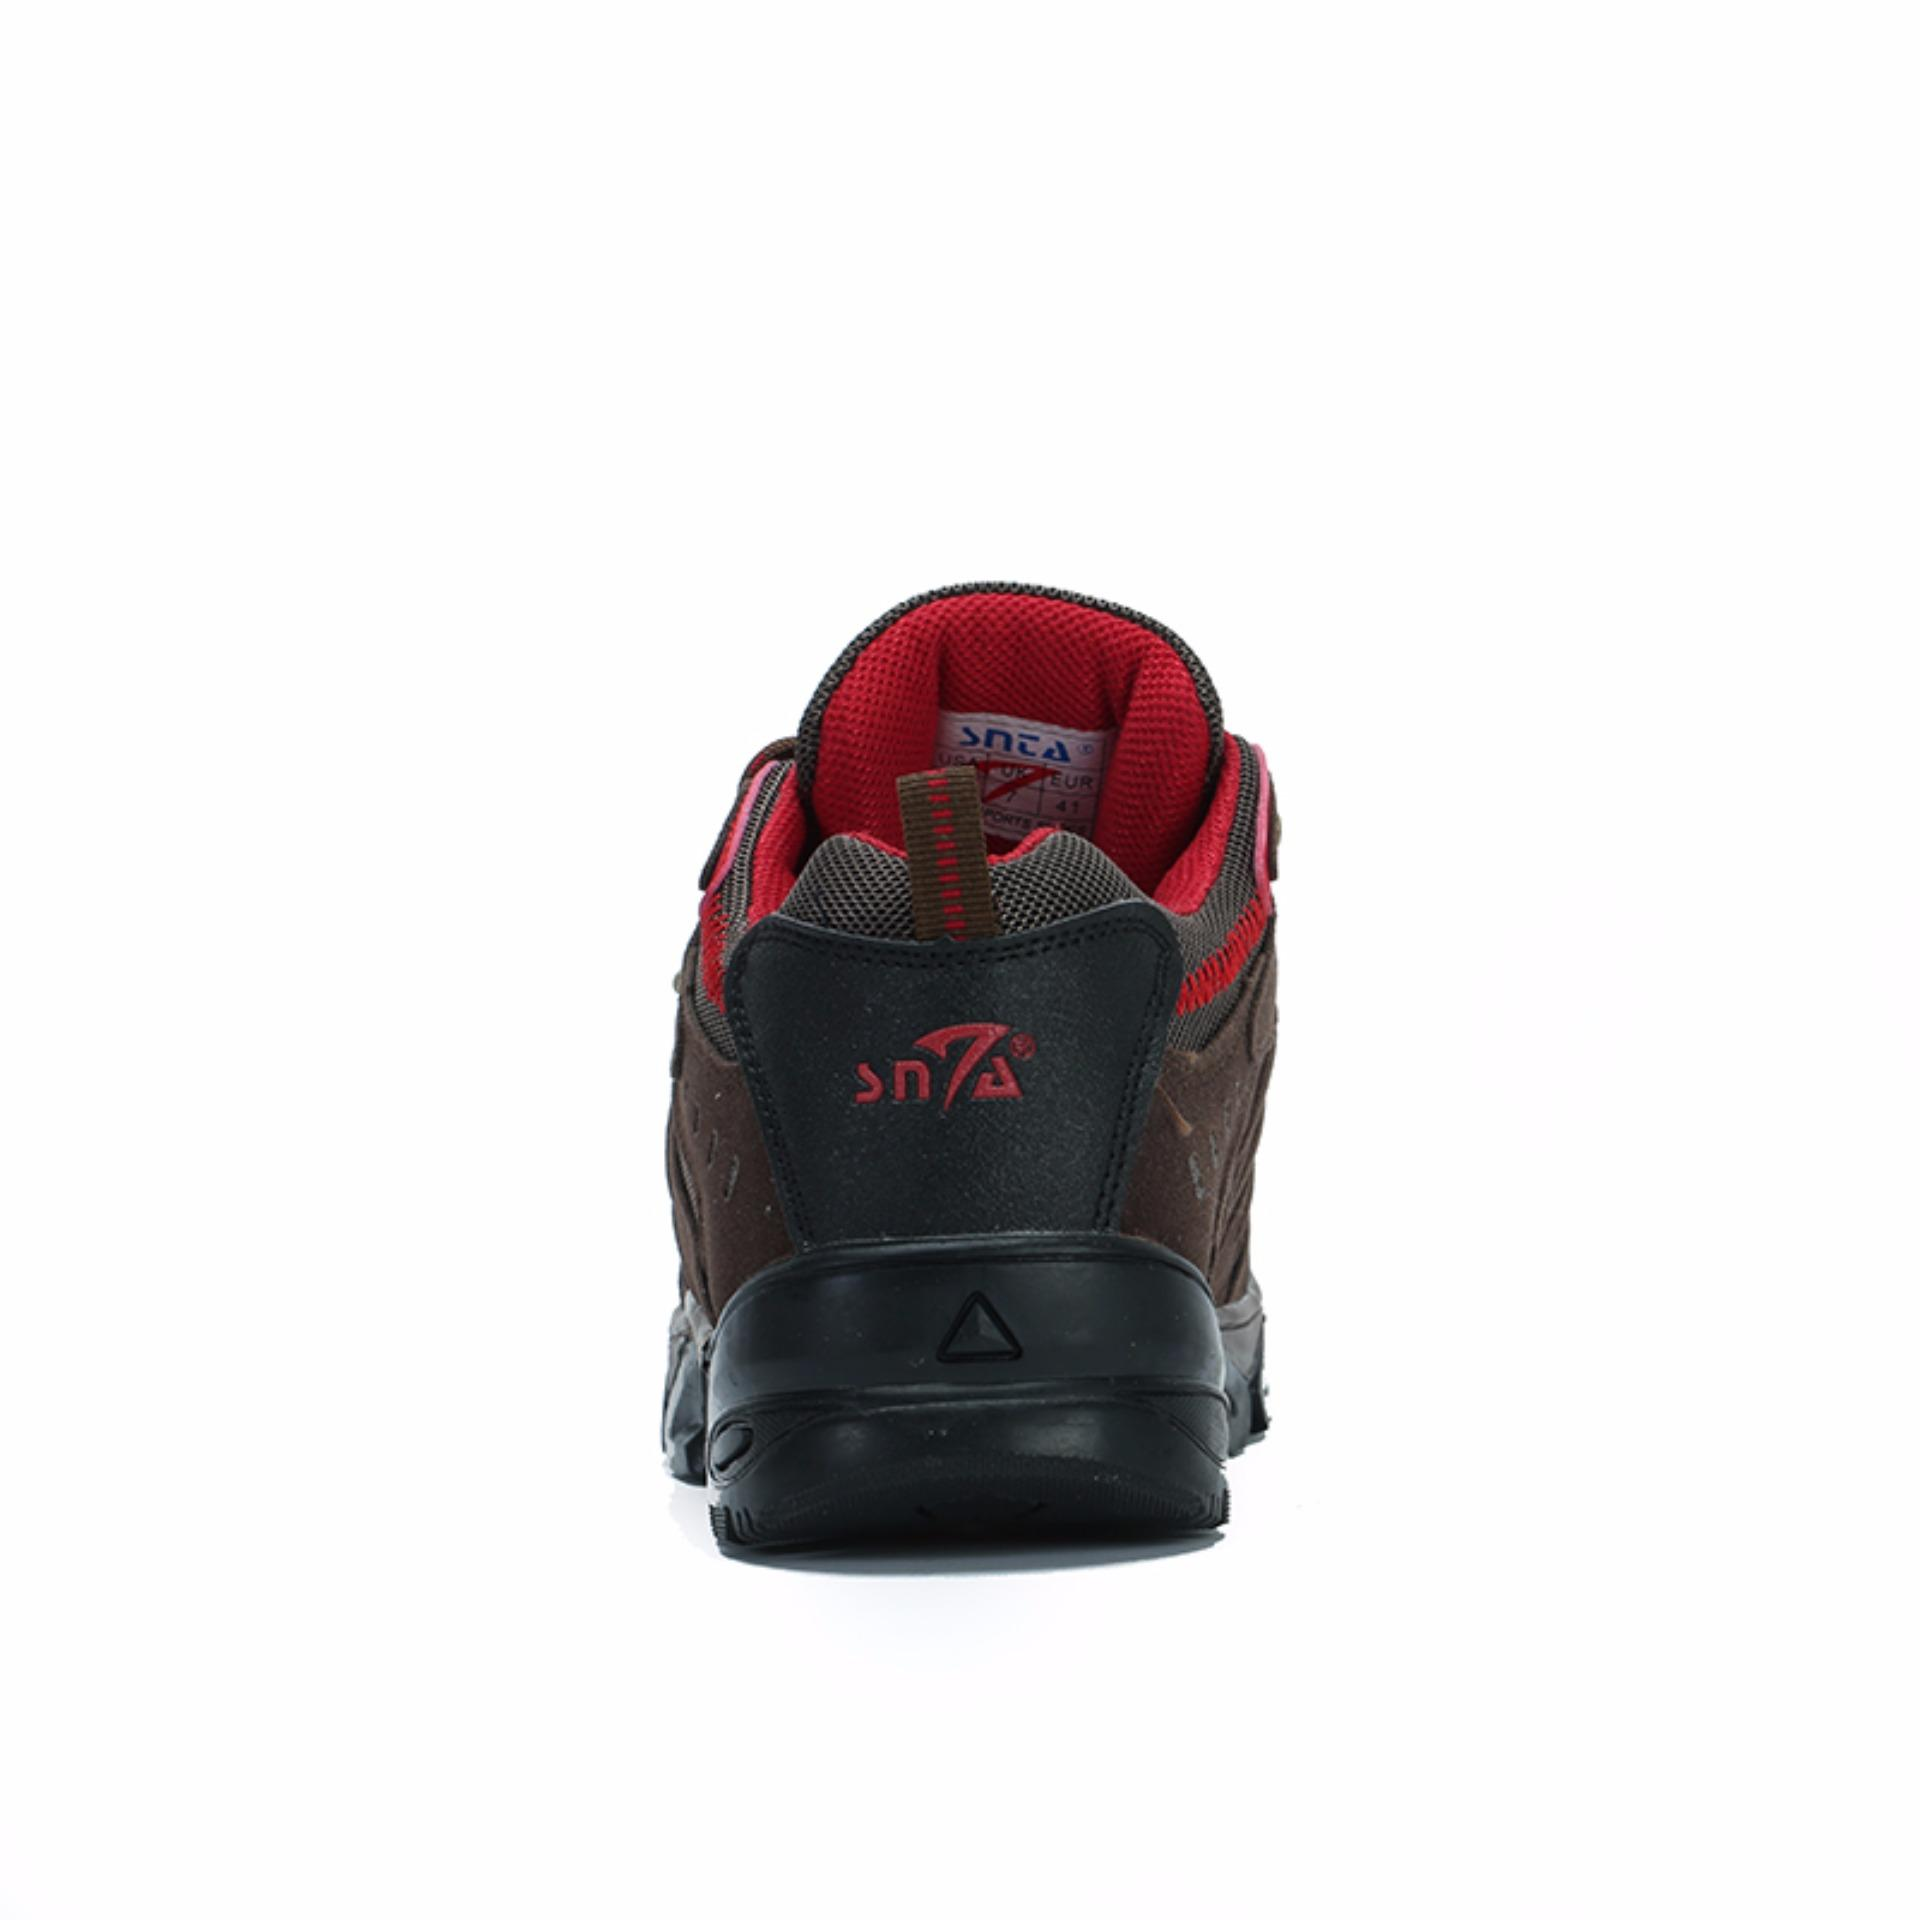 Snta Sepatu Hiking Outdoor Gunung 429 Cokelat Orange 467 Series Trekking 431 Merah